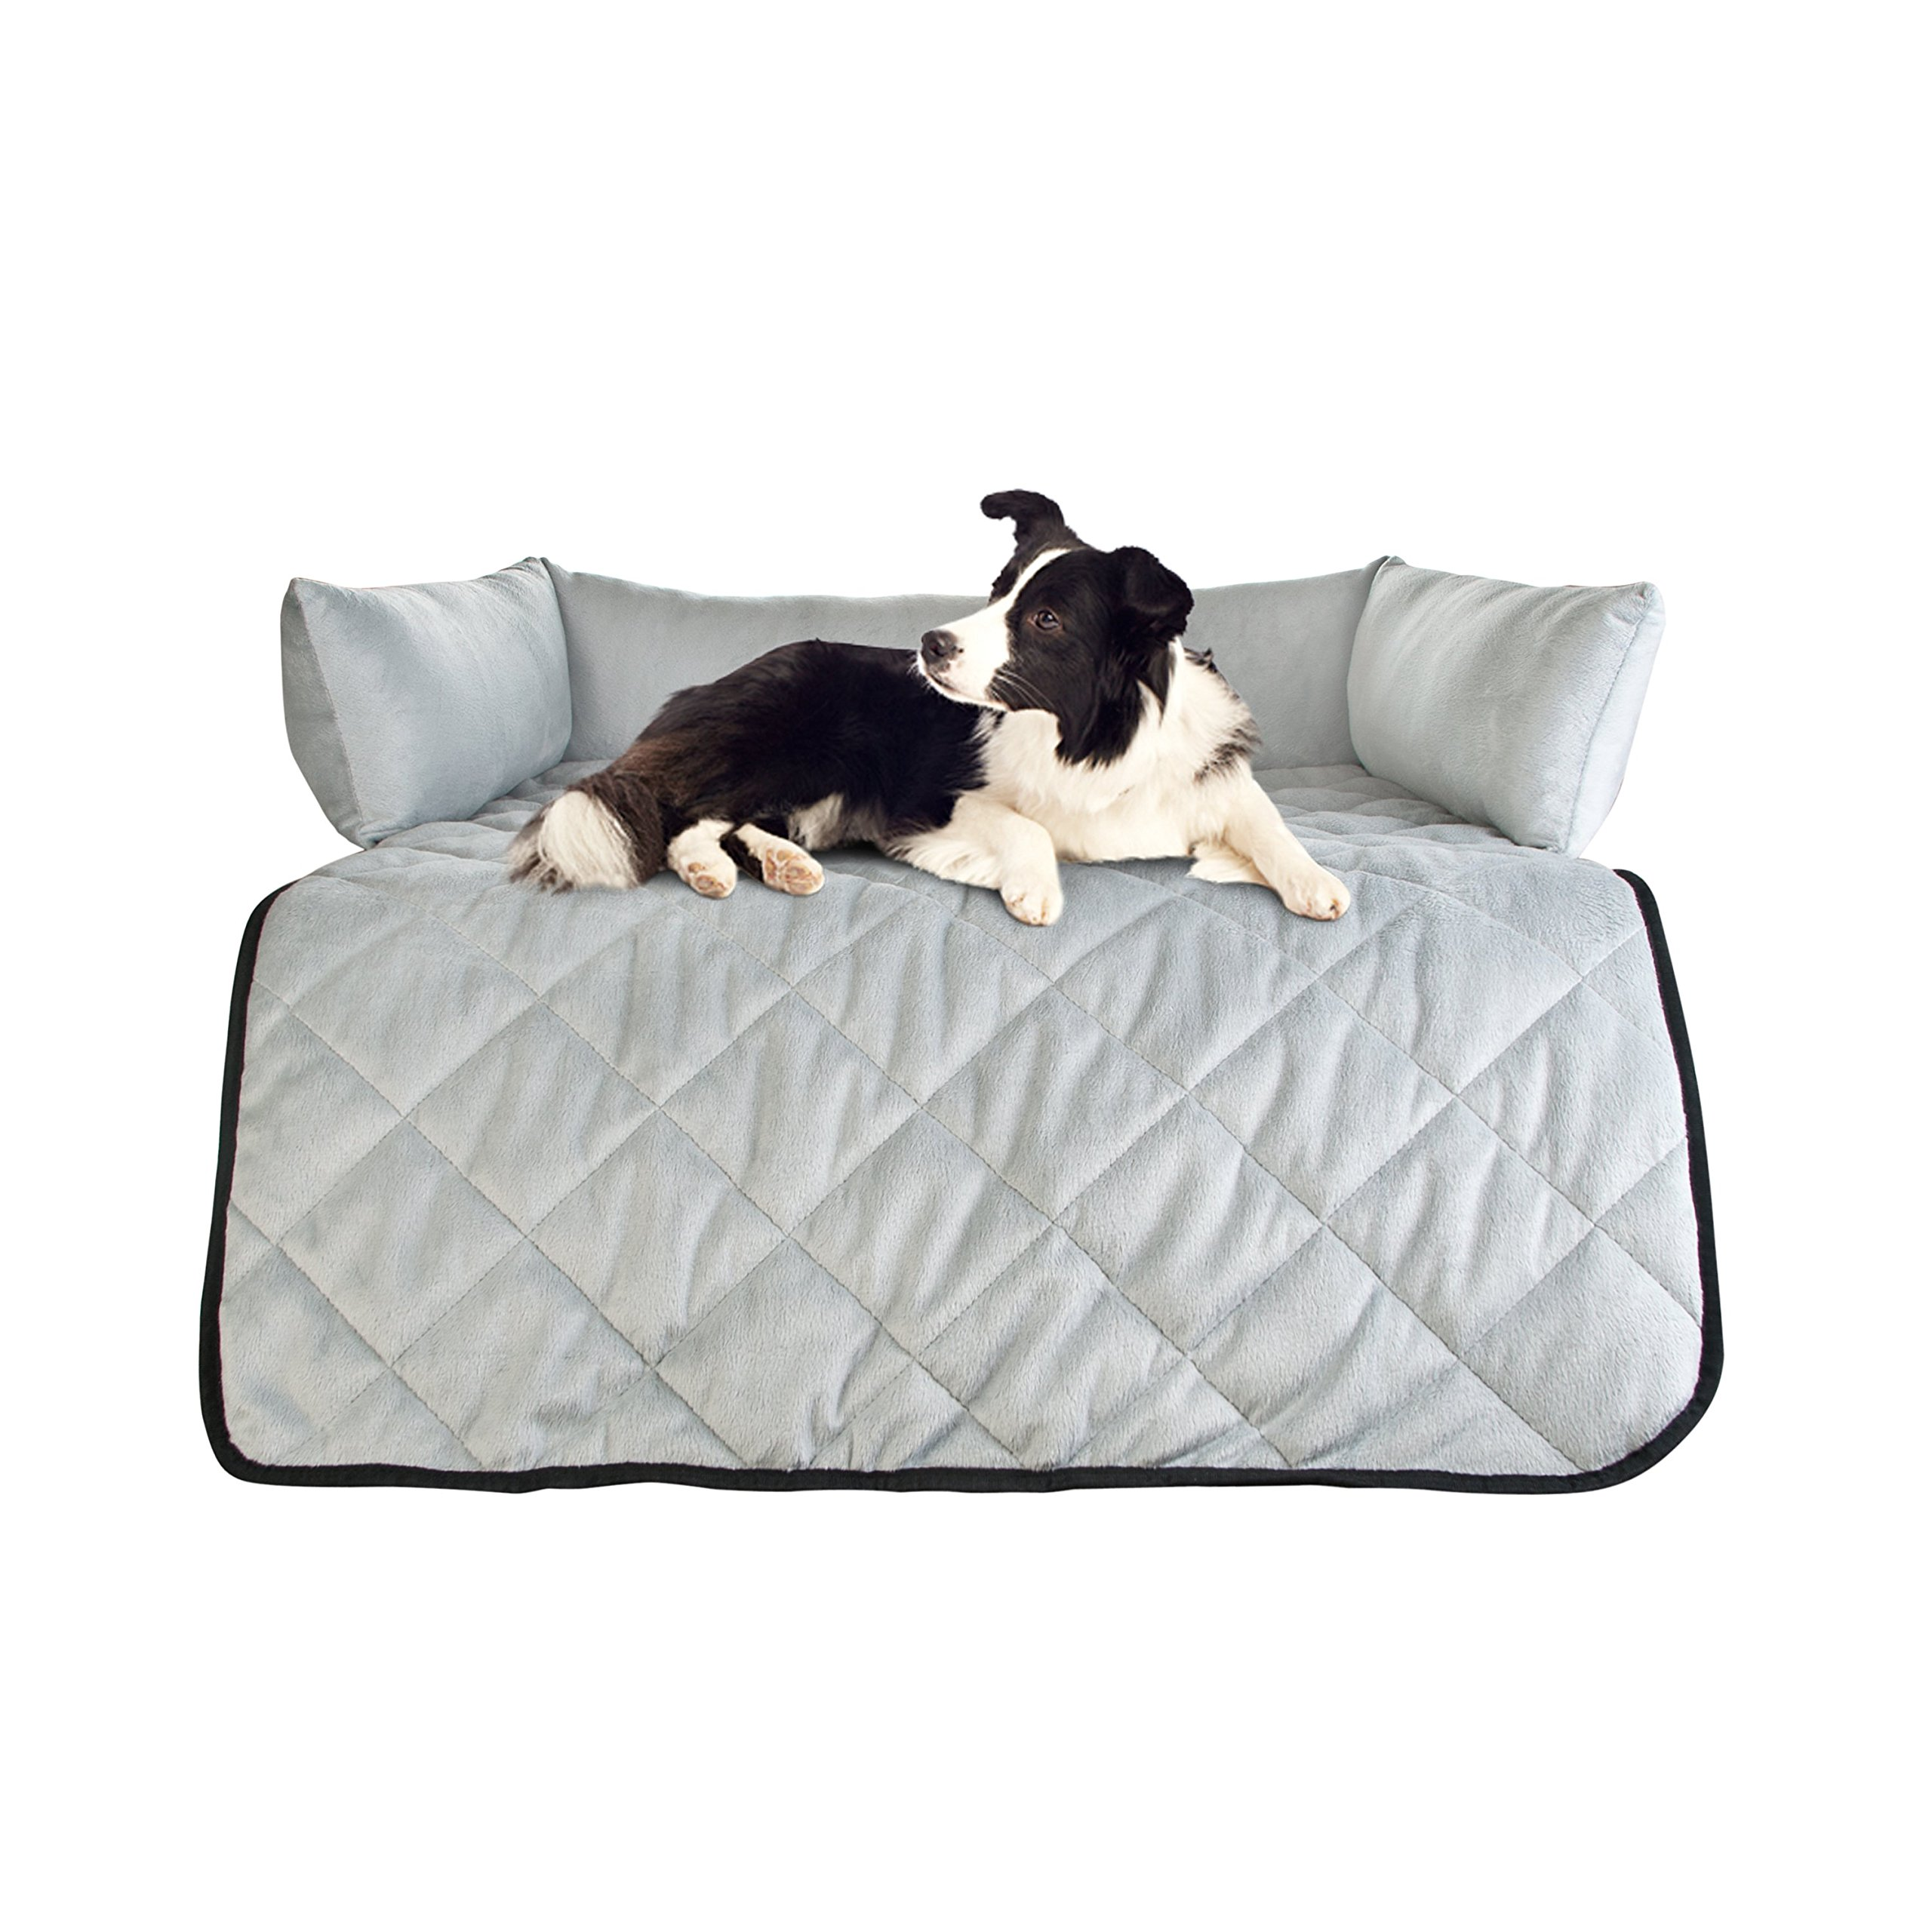 Miraculous Details About Snappies Petcare Cat Dog Bed Couch Cover Sofas Chairs Beds Multi Purpose Pet Inzonedesignstudio Interior Chair Design Inzonedesignstudiocom